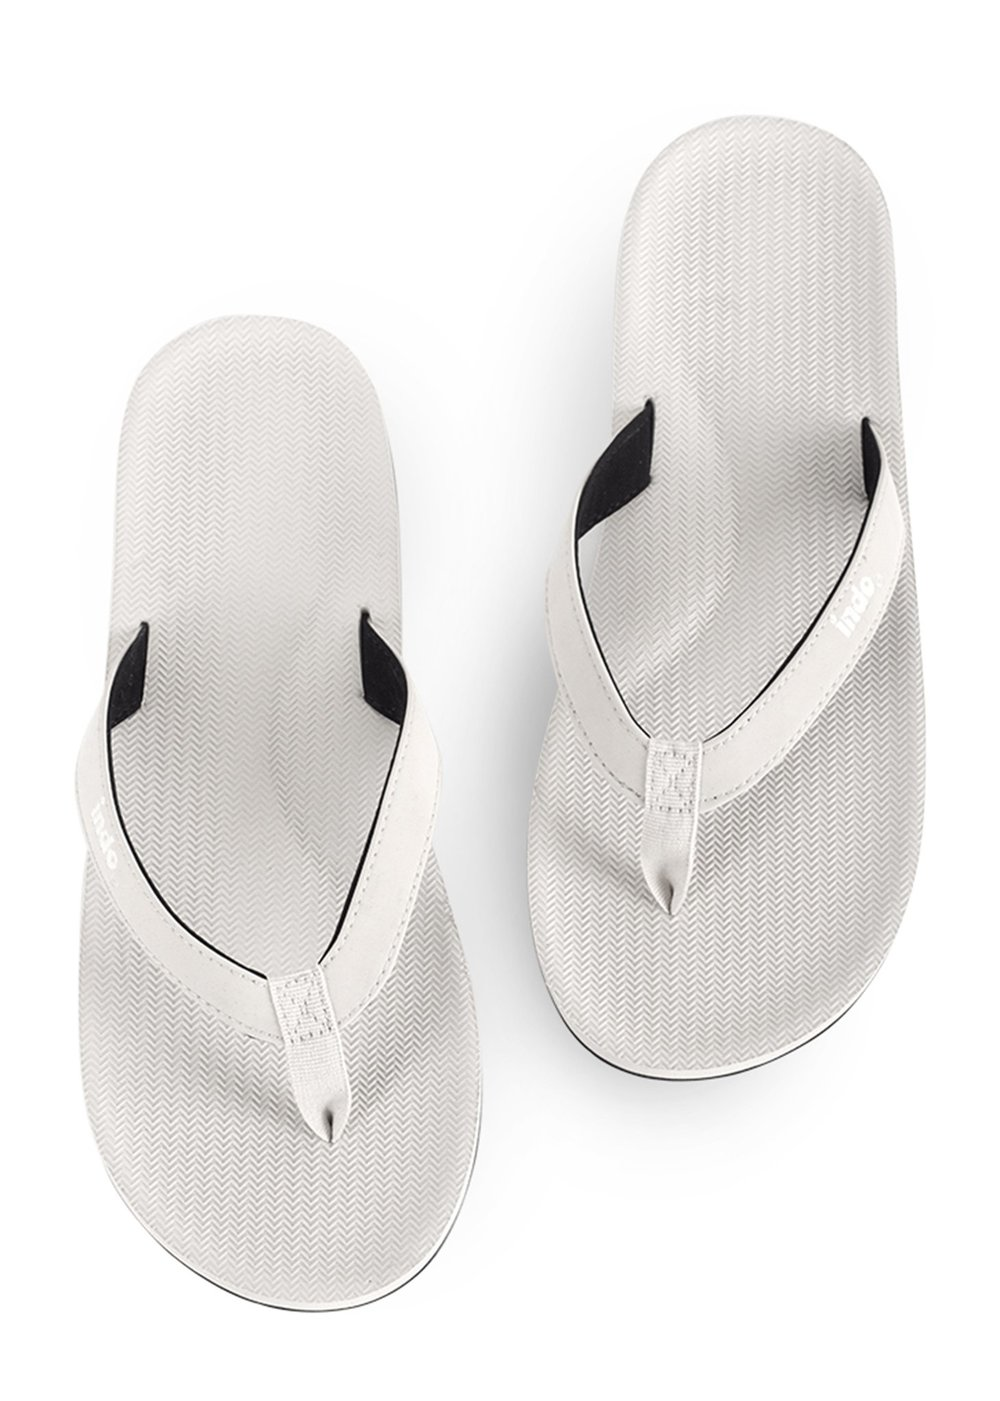 a26087efb essntls-flip-flops-men-sea-salt-003 1024x1024 2x.